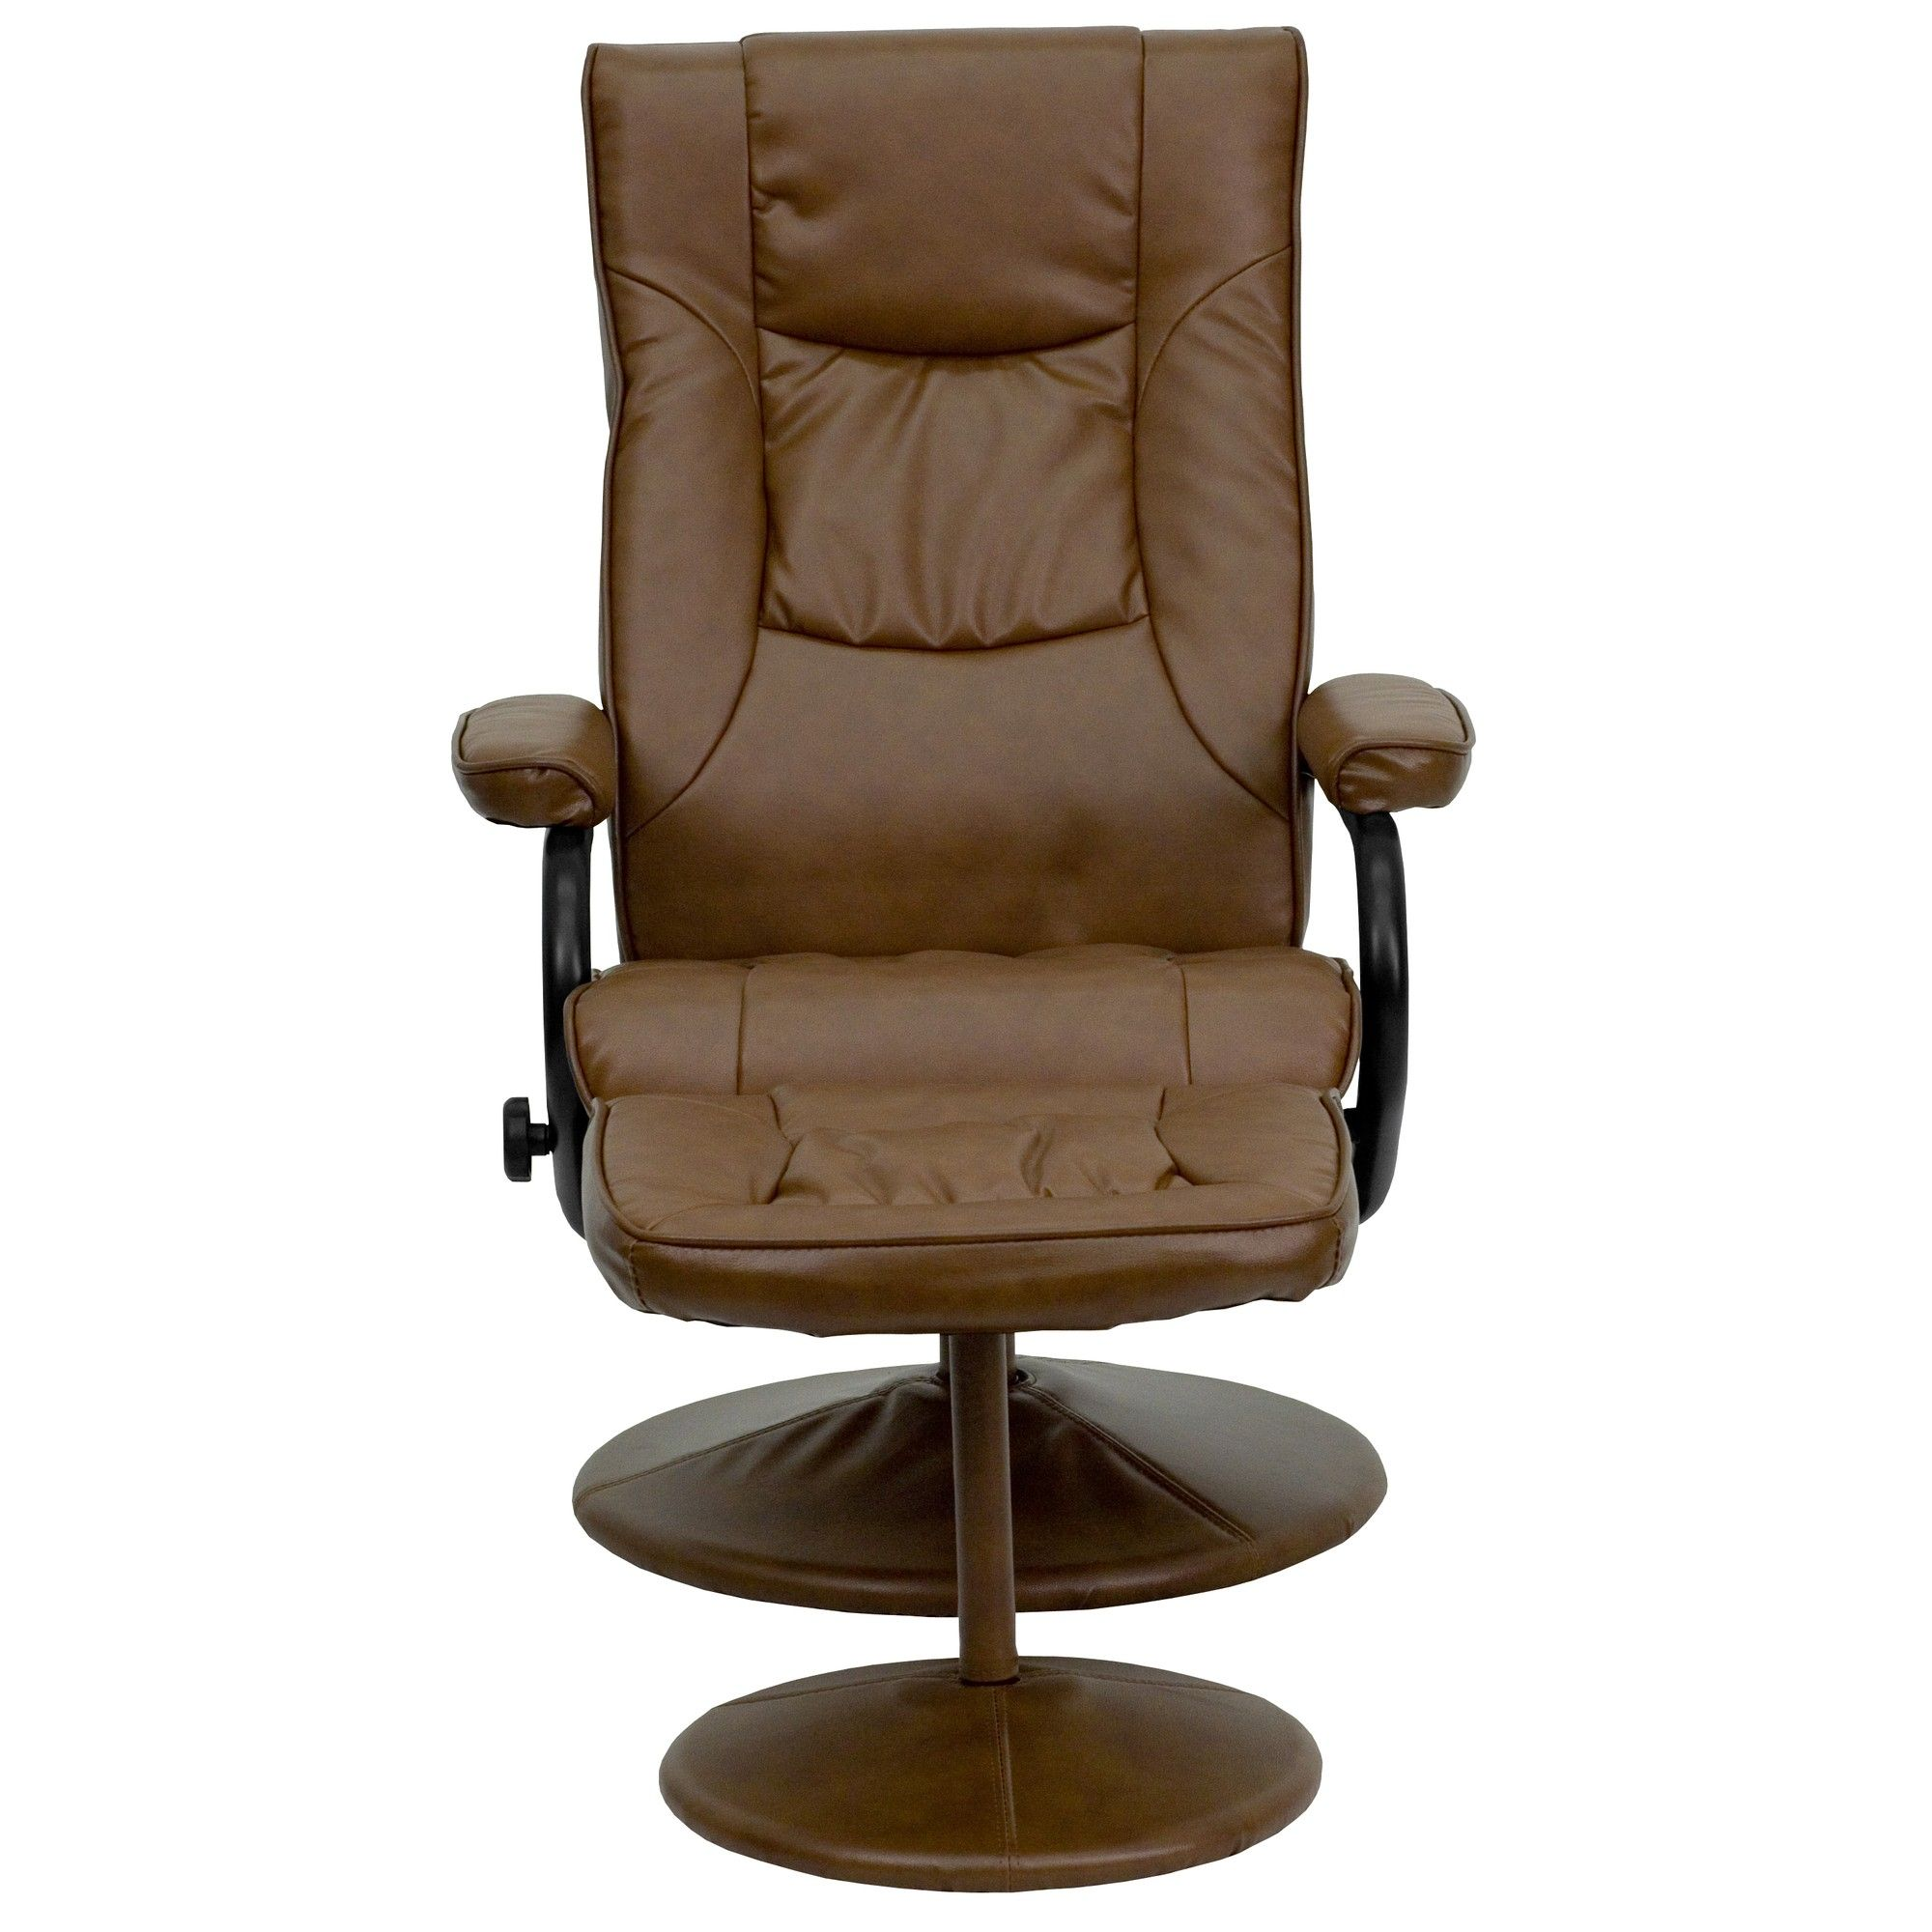 Flash Furniture Contemporary Soft Leather Recliner and Ottoman with Base Color Palimino - BT7862PALIMINO  sc 1 st  Pinterest & Flash Furniture Contemporary Soft Leather Recliner and Ottoman ... islam-shia.org